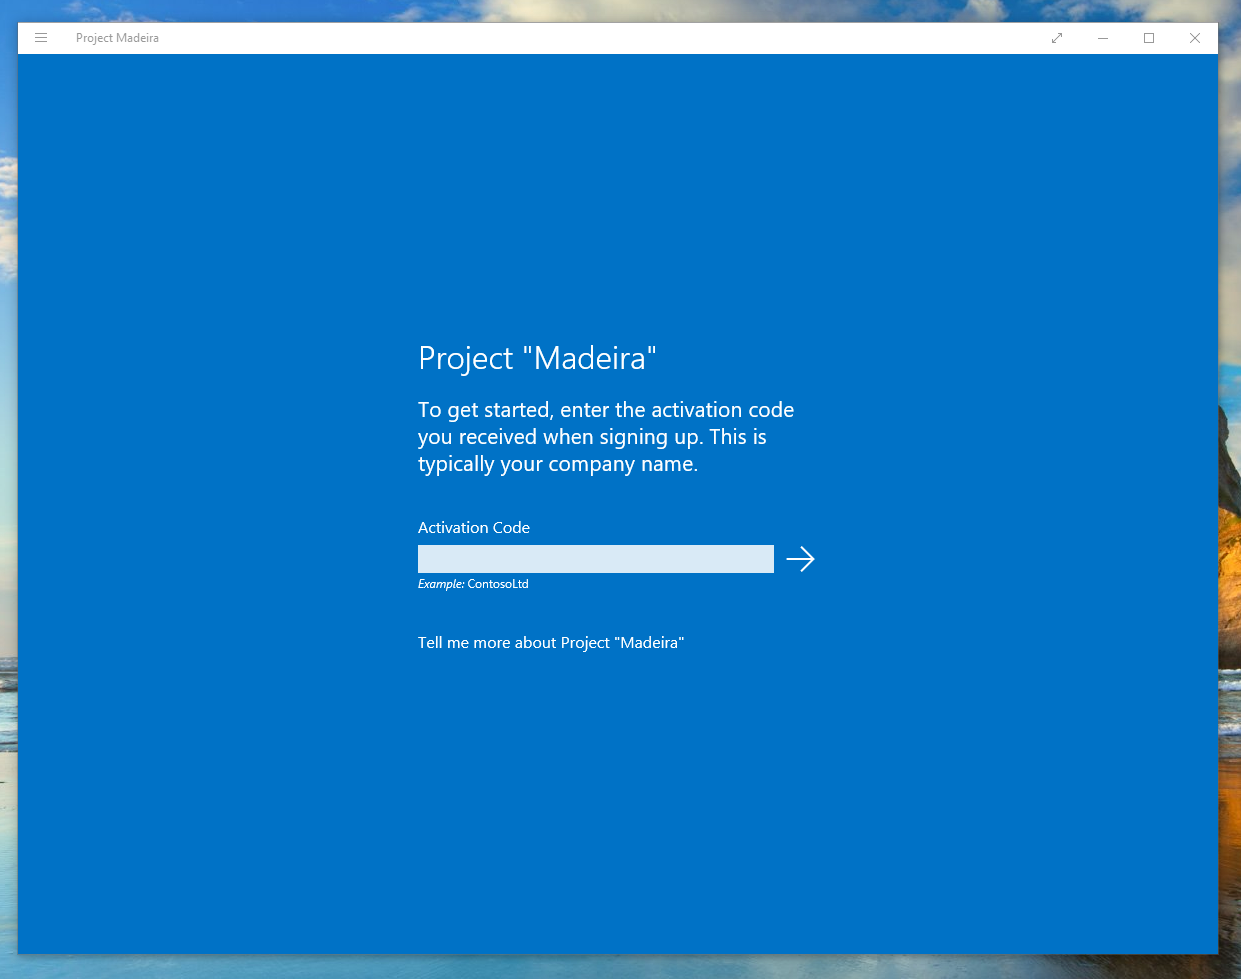 Microsoft Releases Windows 10 App For Project Maderia